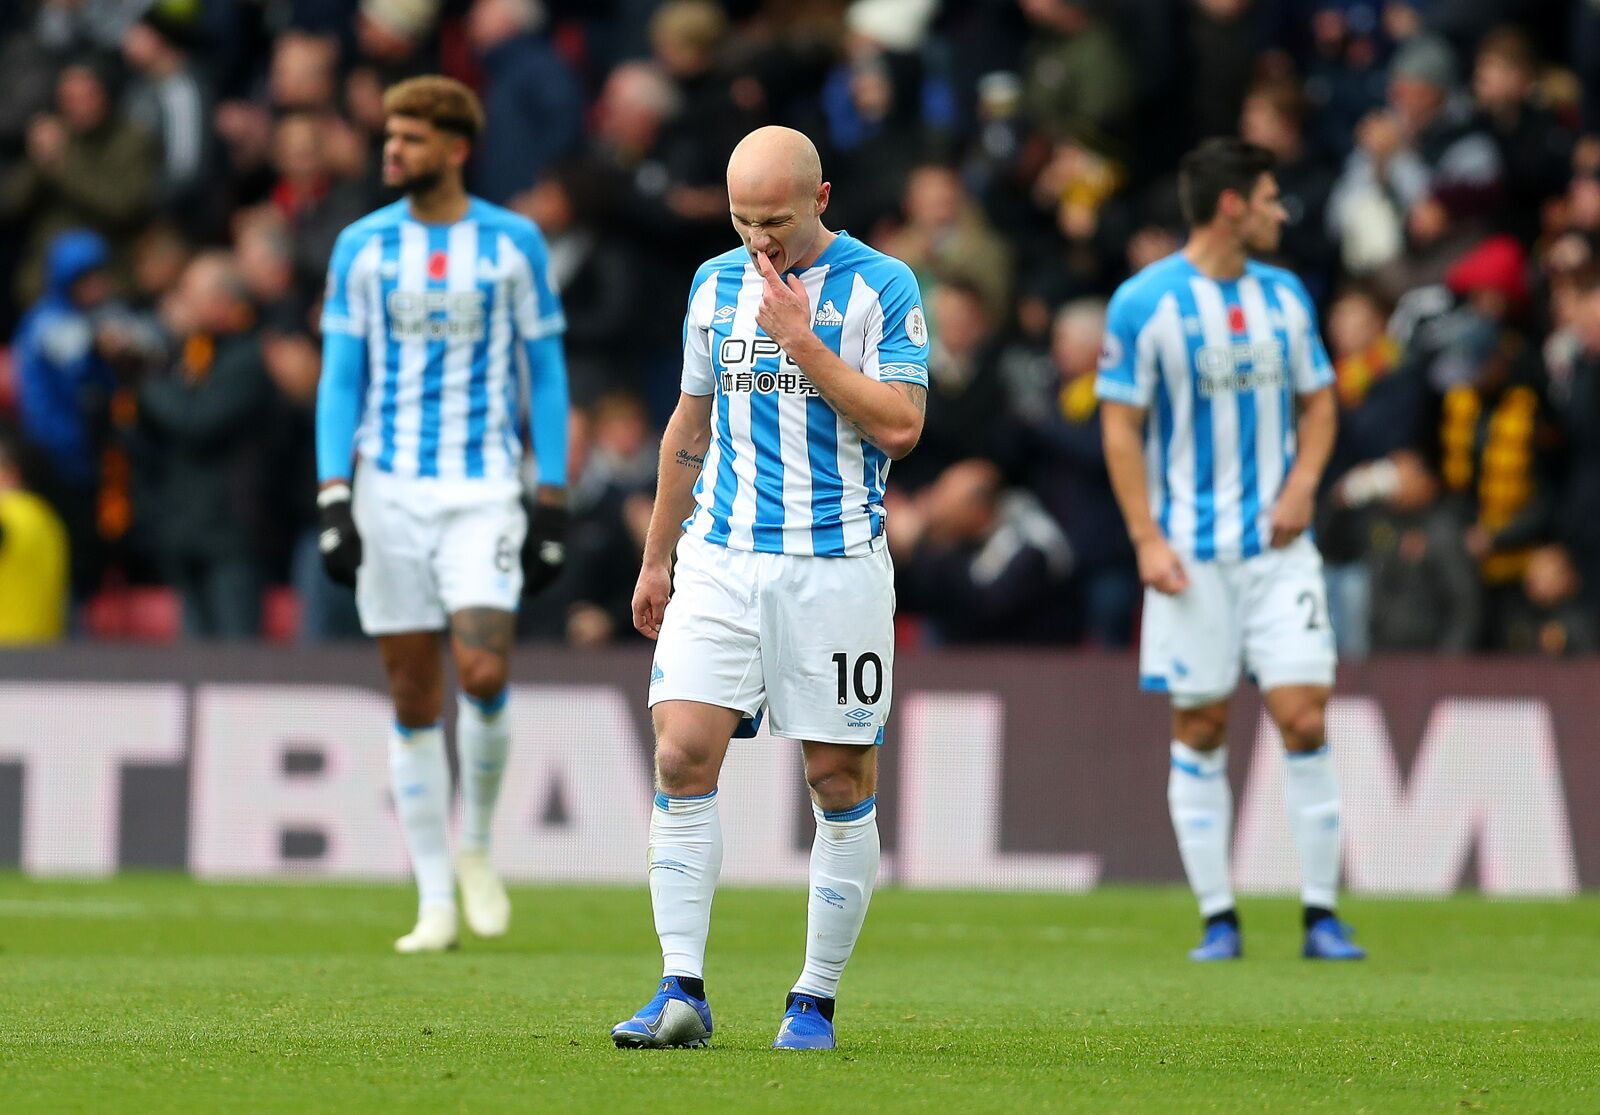 Huddersfield lose Jonas Lossl to Everton – Who's next out the door